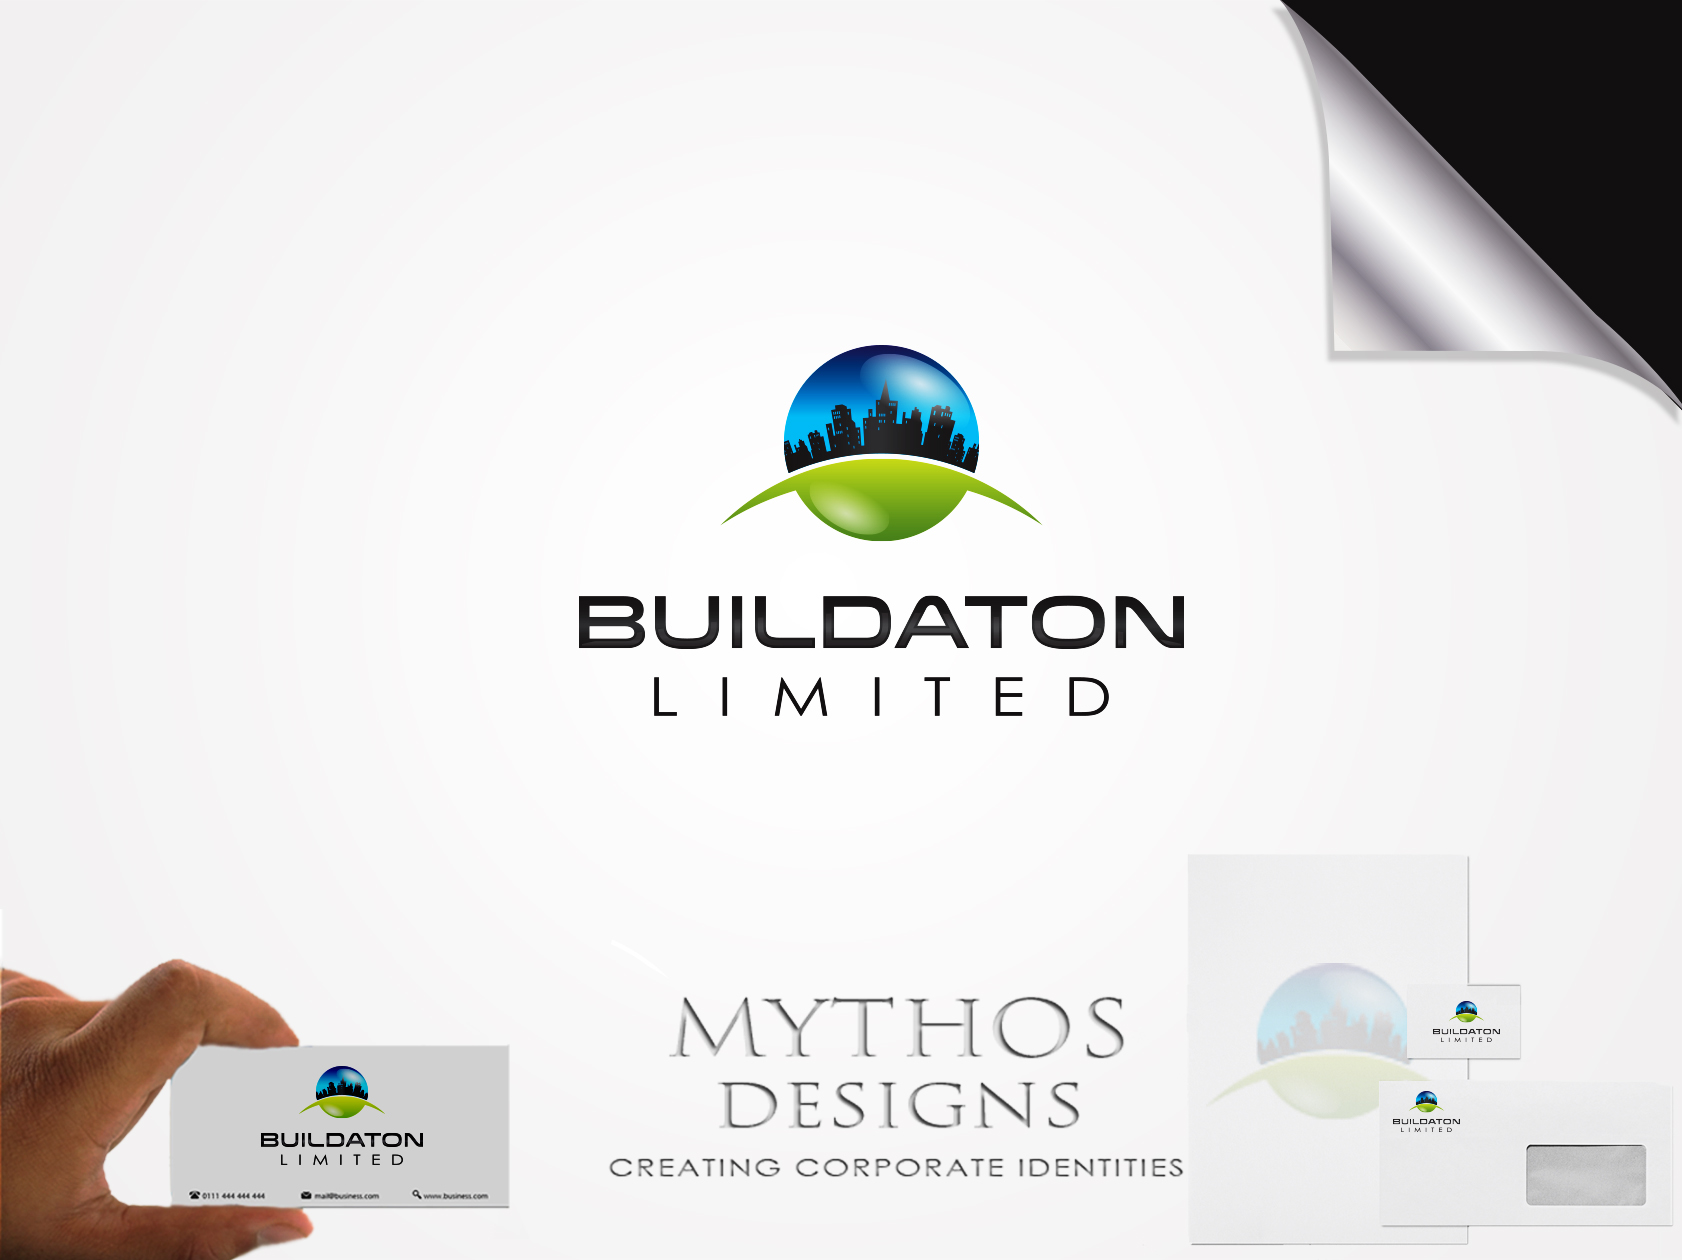 Logo Design by Mythos Designs - Entry No. 16 in the Logo Design Contest Artistic Logo Design for Buildaton Limited.